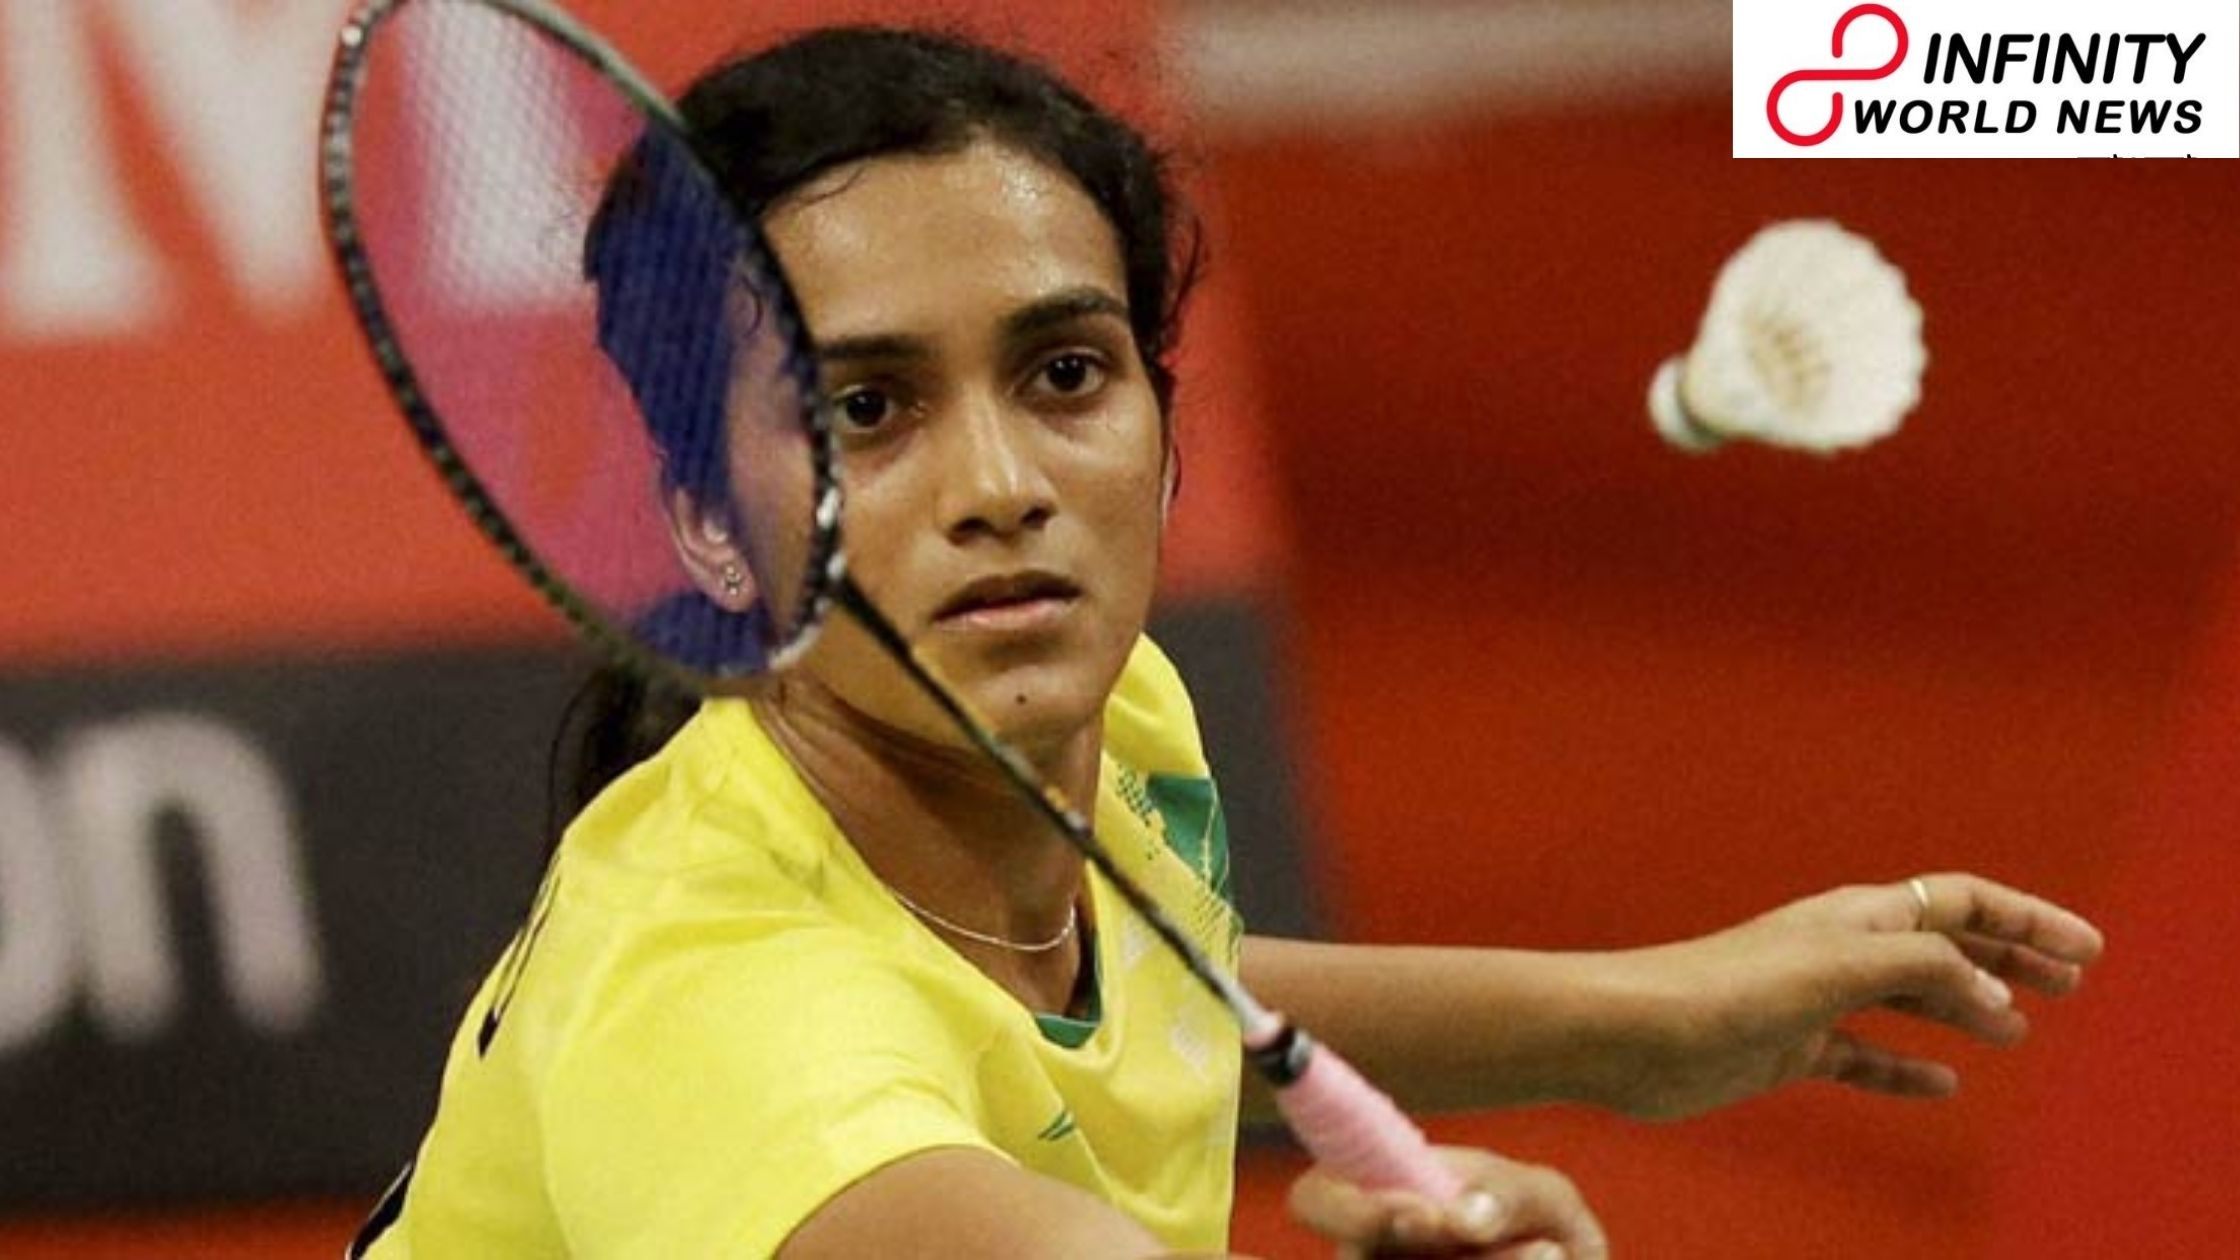 BWF World Tour Finals 2021 Results: PV Sindhu Completes Campaign With Win, Kidambi Srikanth, Exodus With Defeat